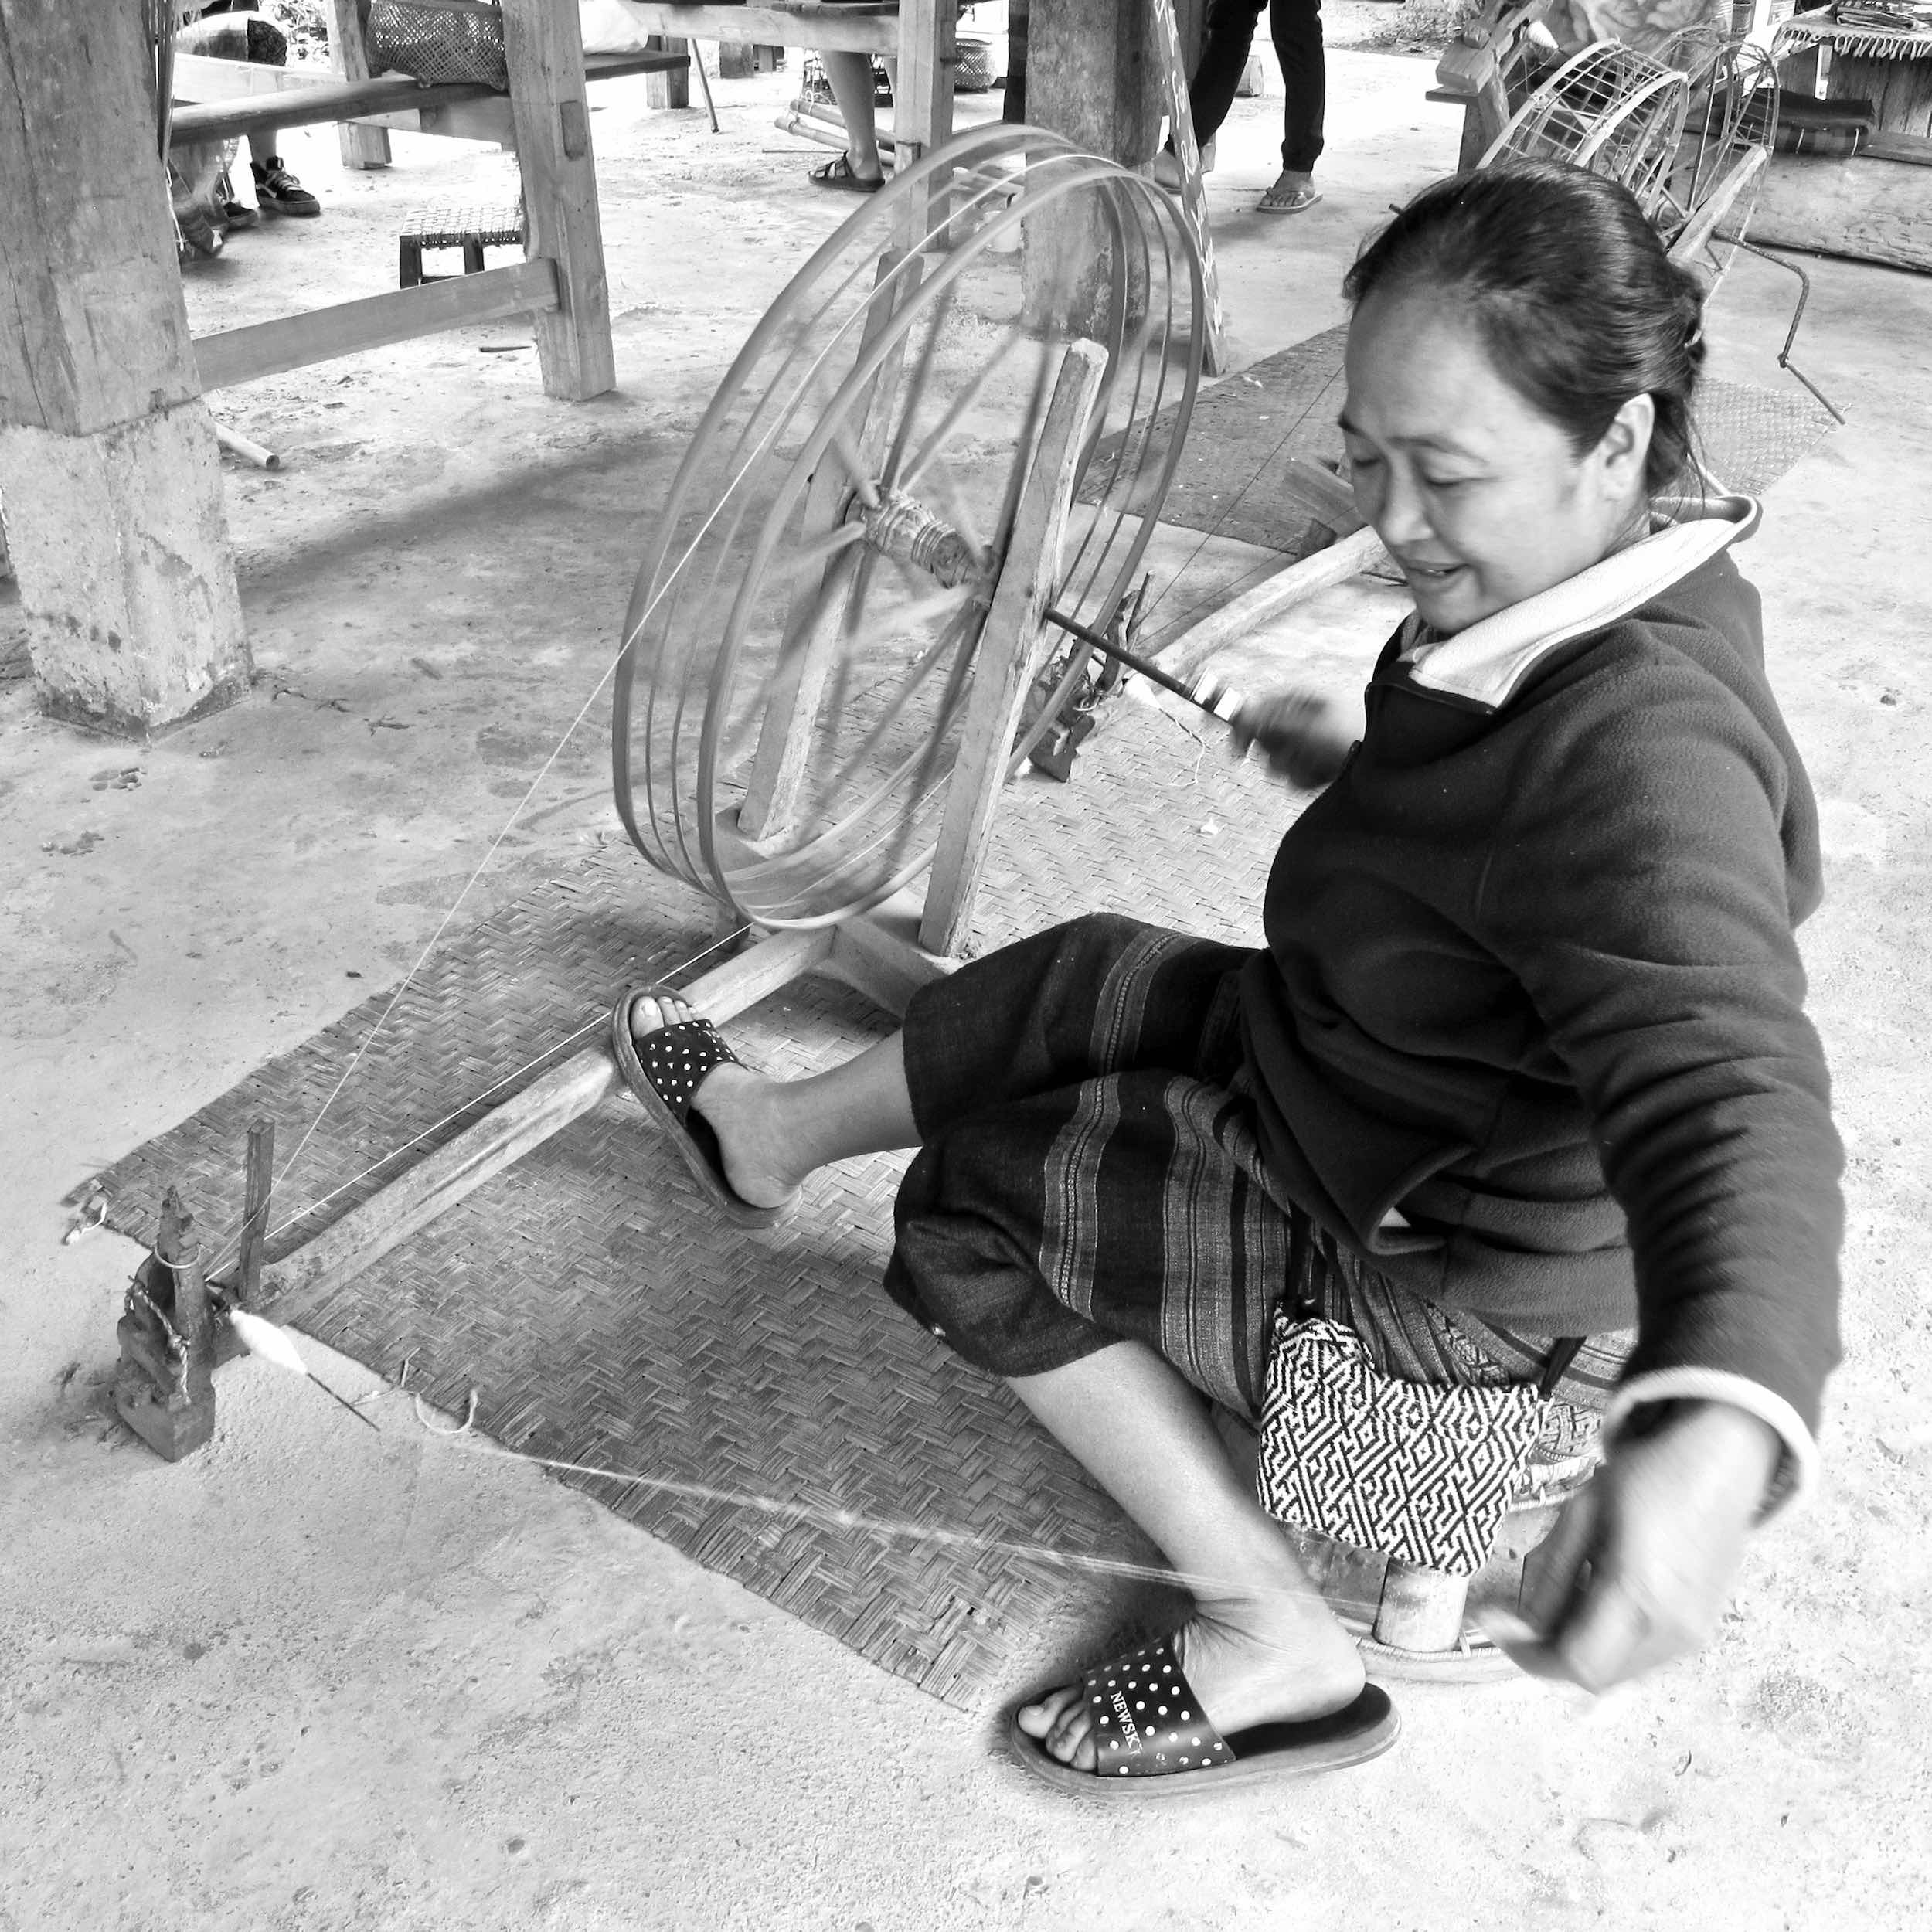 Master weaver, Sang, spinning cotton into thread in the village of Nayang Nua at the Ban Lue Handcrafts & Homestay, is the weaver of the Tai Lue Earthy Cotton Large Wrap - Double Weave. To read more about Sang and the Ban Lue Handcrafts & Homestay, read our blog   A Creative Oasis in Northern Laos .